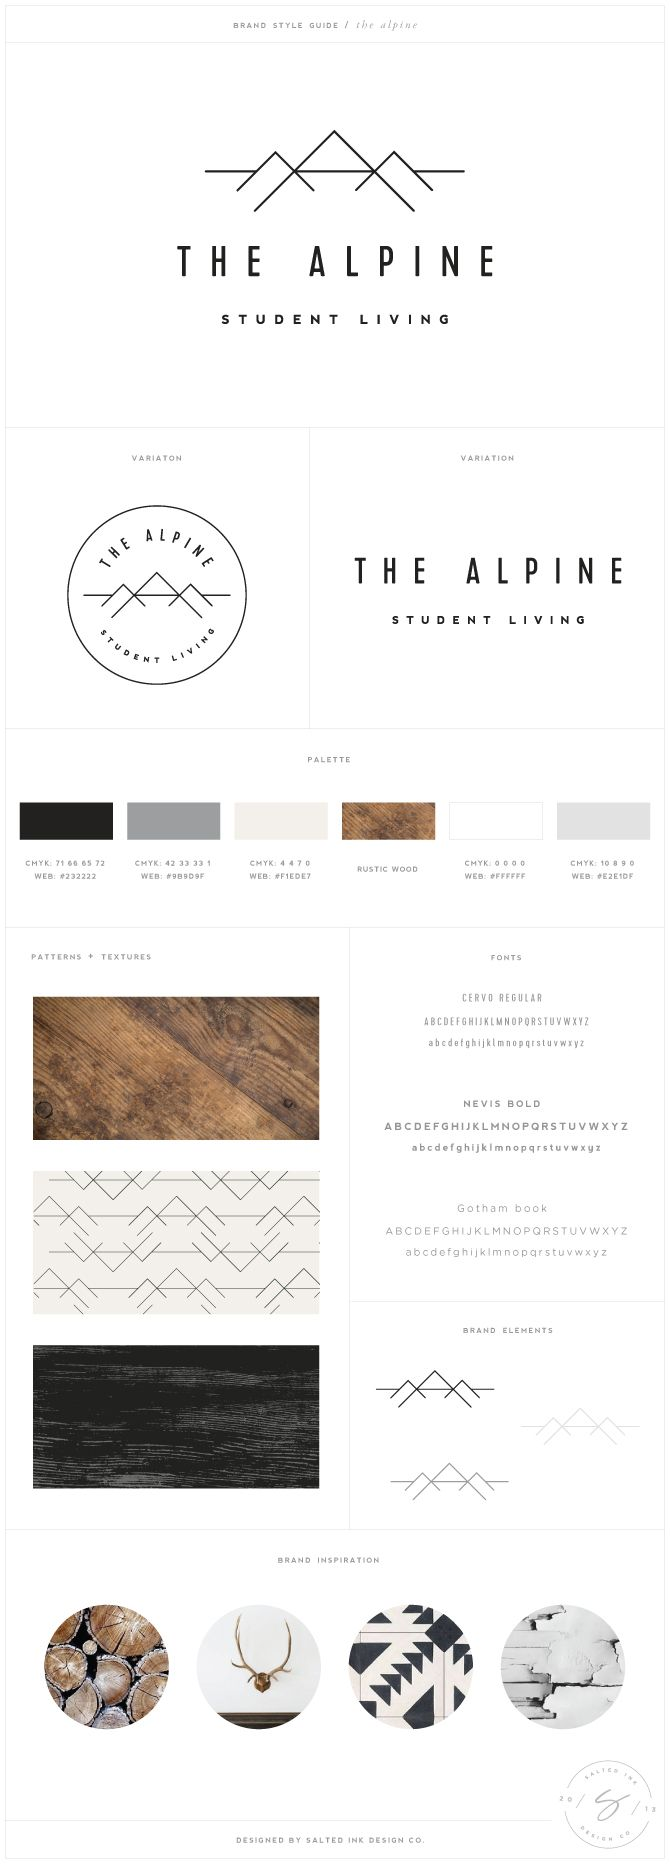 The Alpine Brand Design by Salted Ink | www.saltedink.com | brand design, brand designer, graphic design, brand board, brand guide, Charlotte NC |